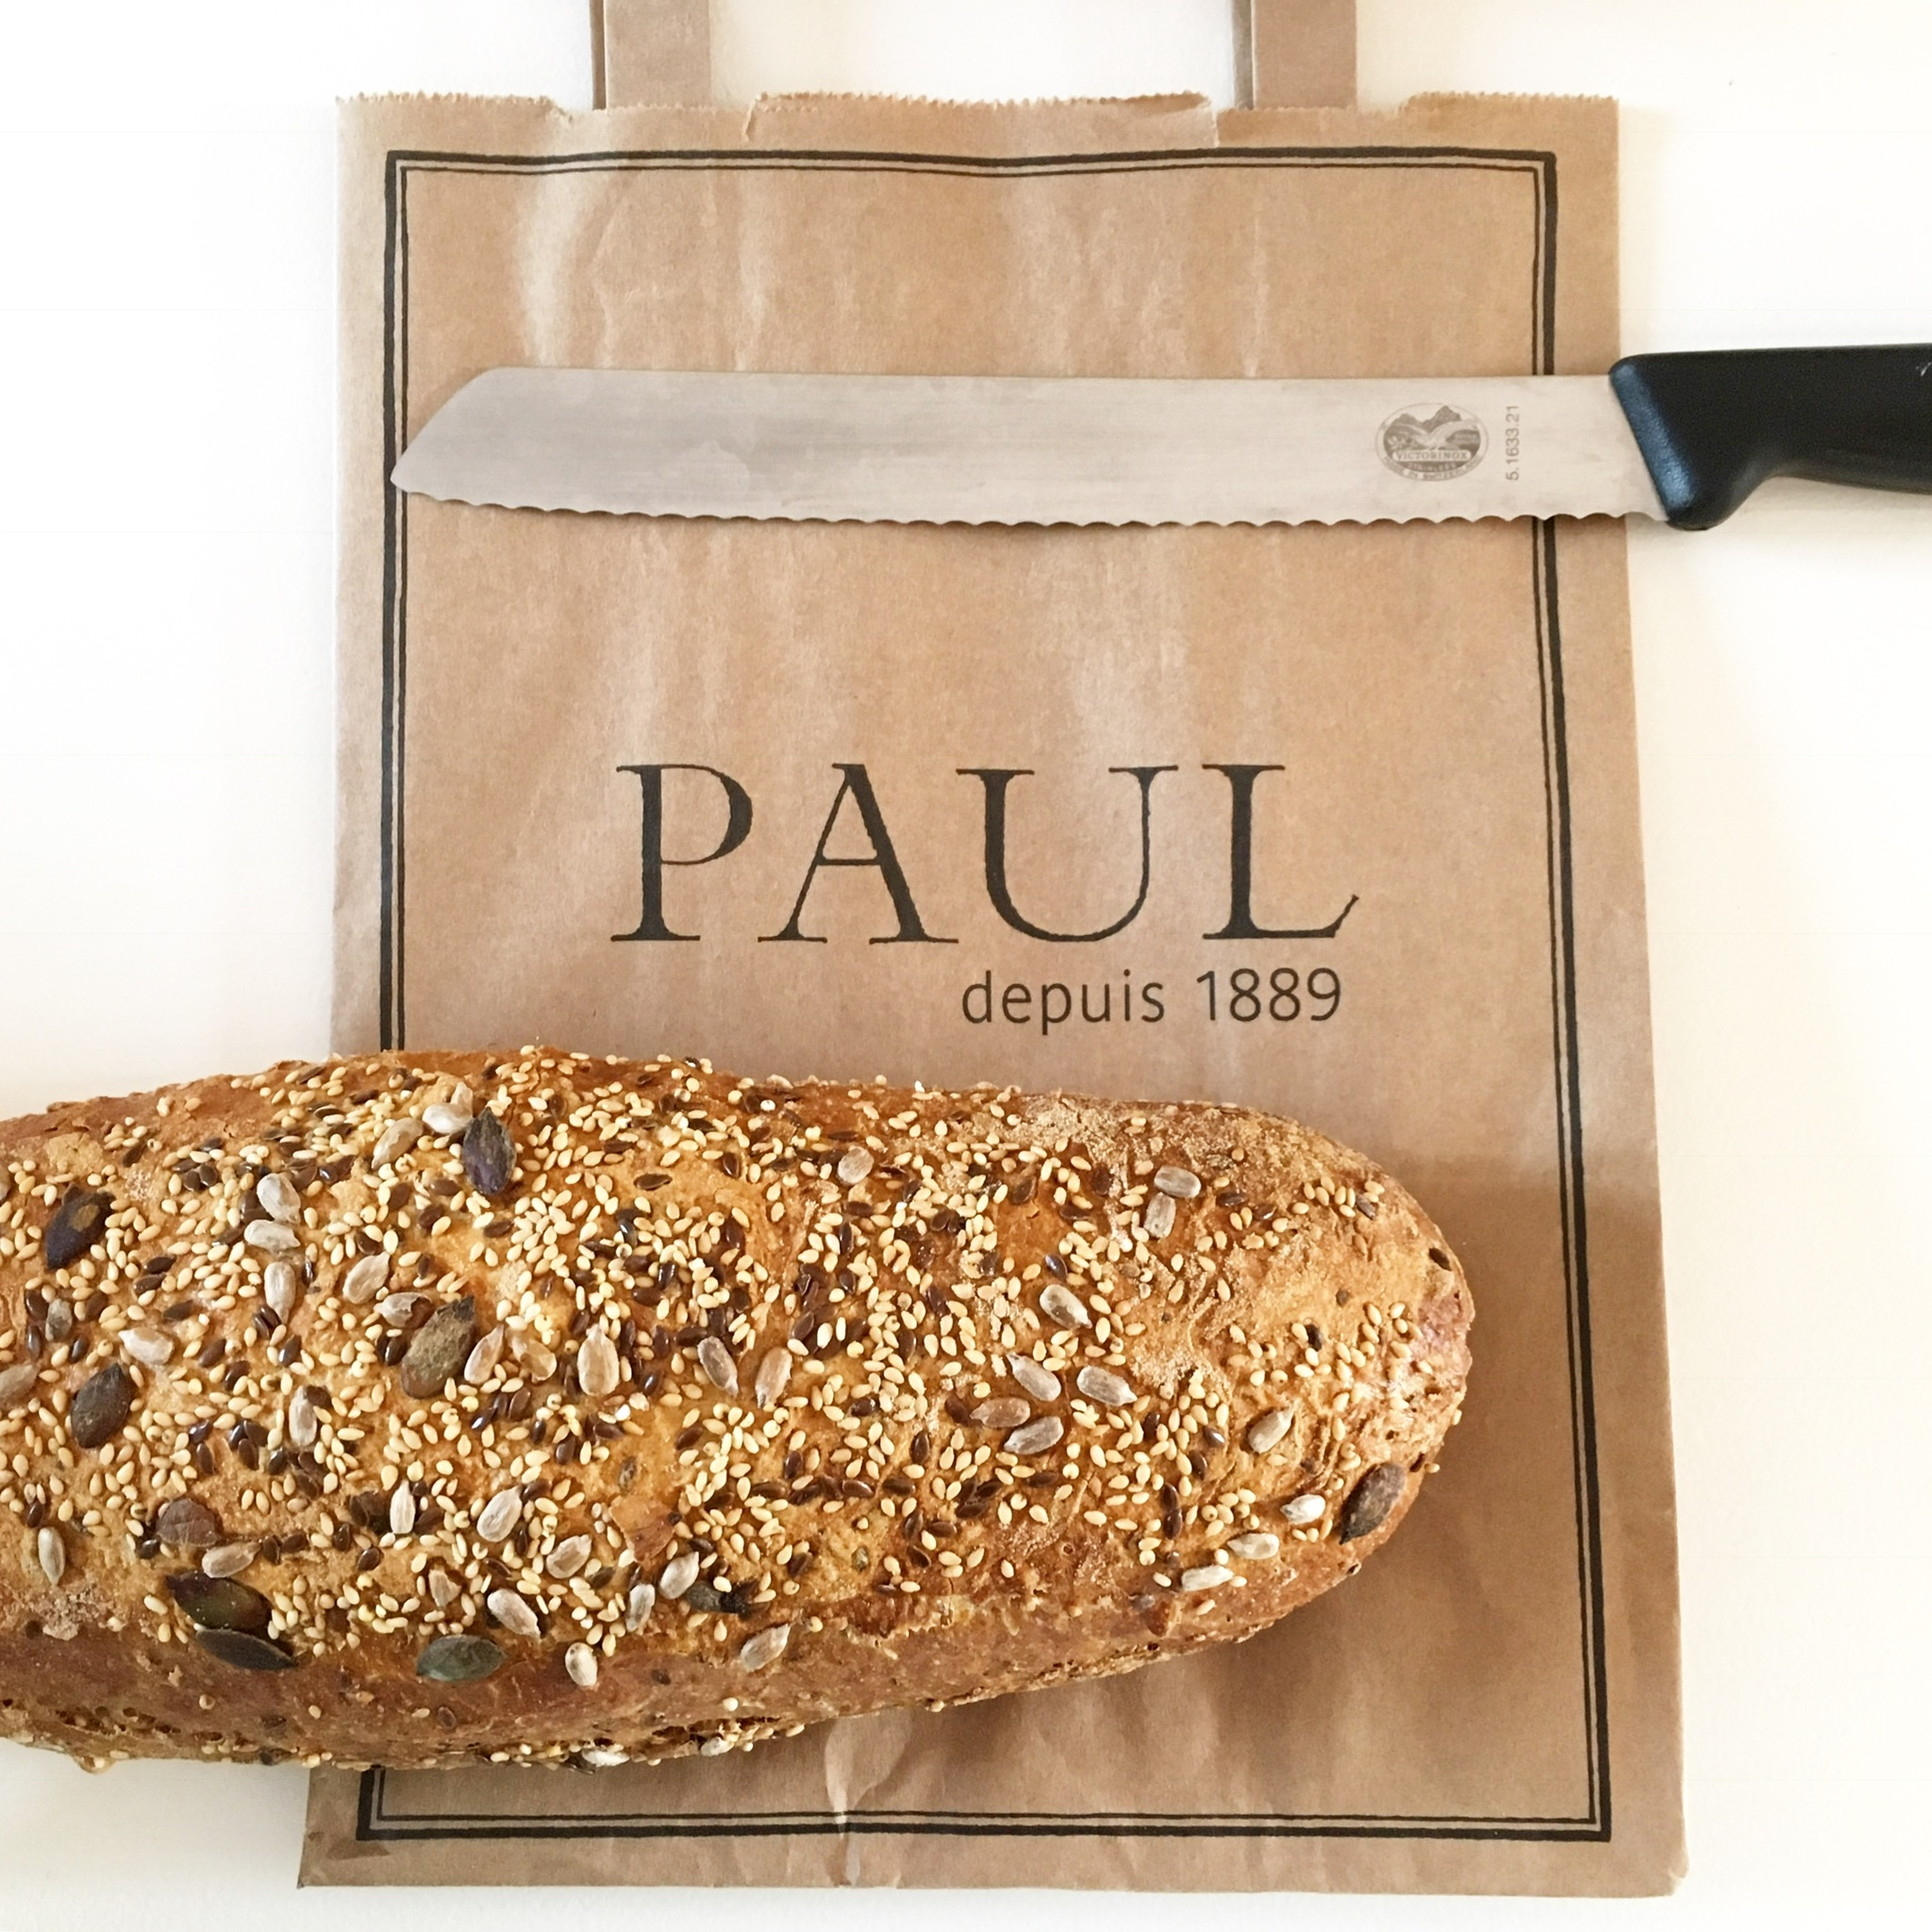 Delicious French Treats And Baking Bread At The New Paul Bakery